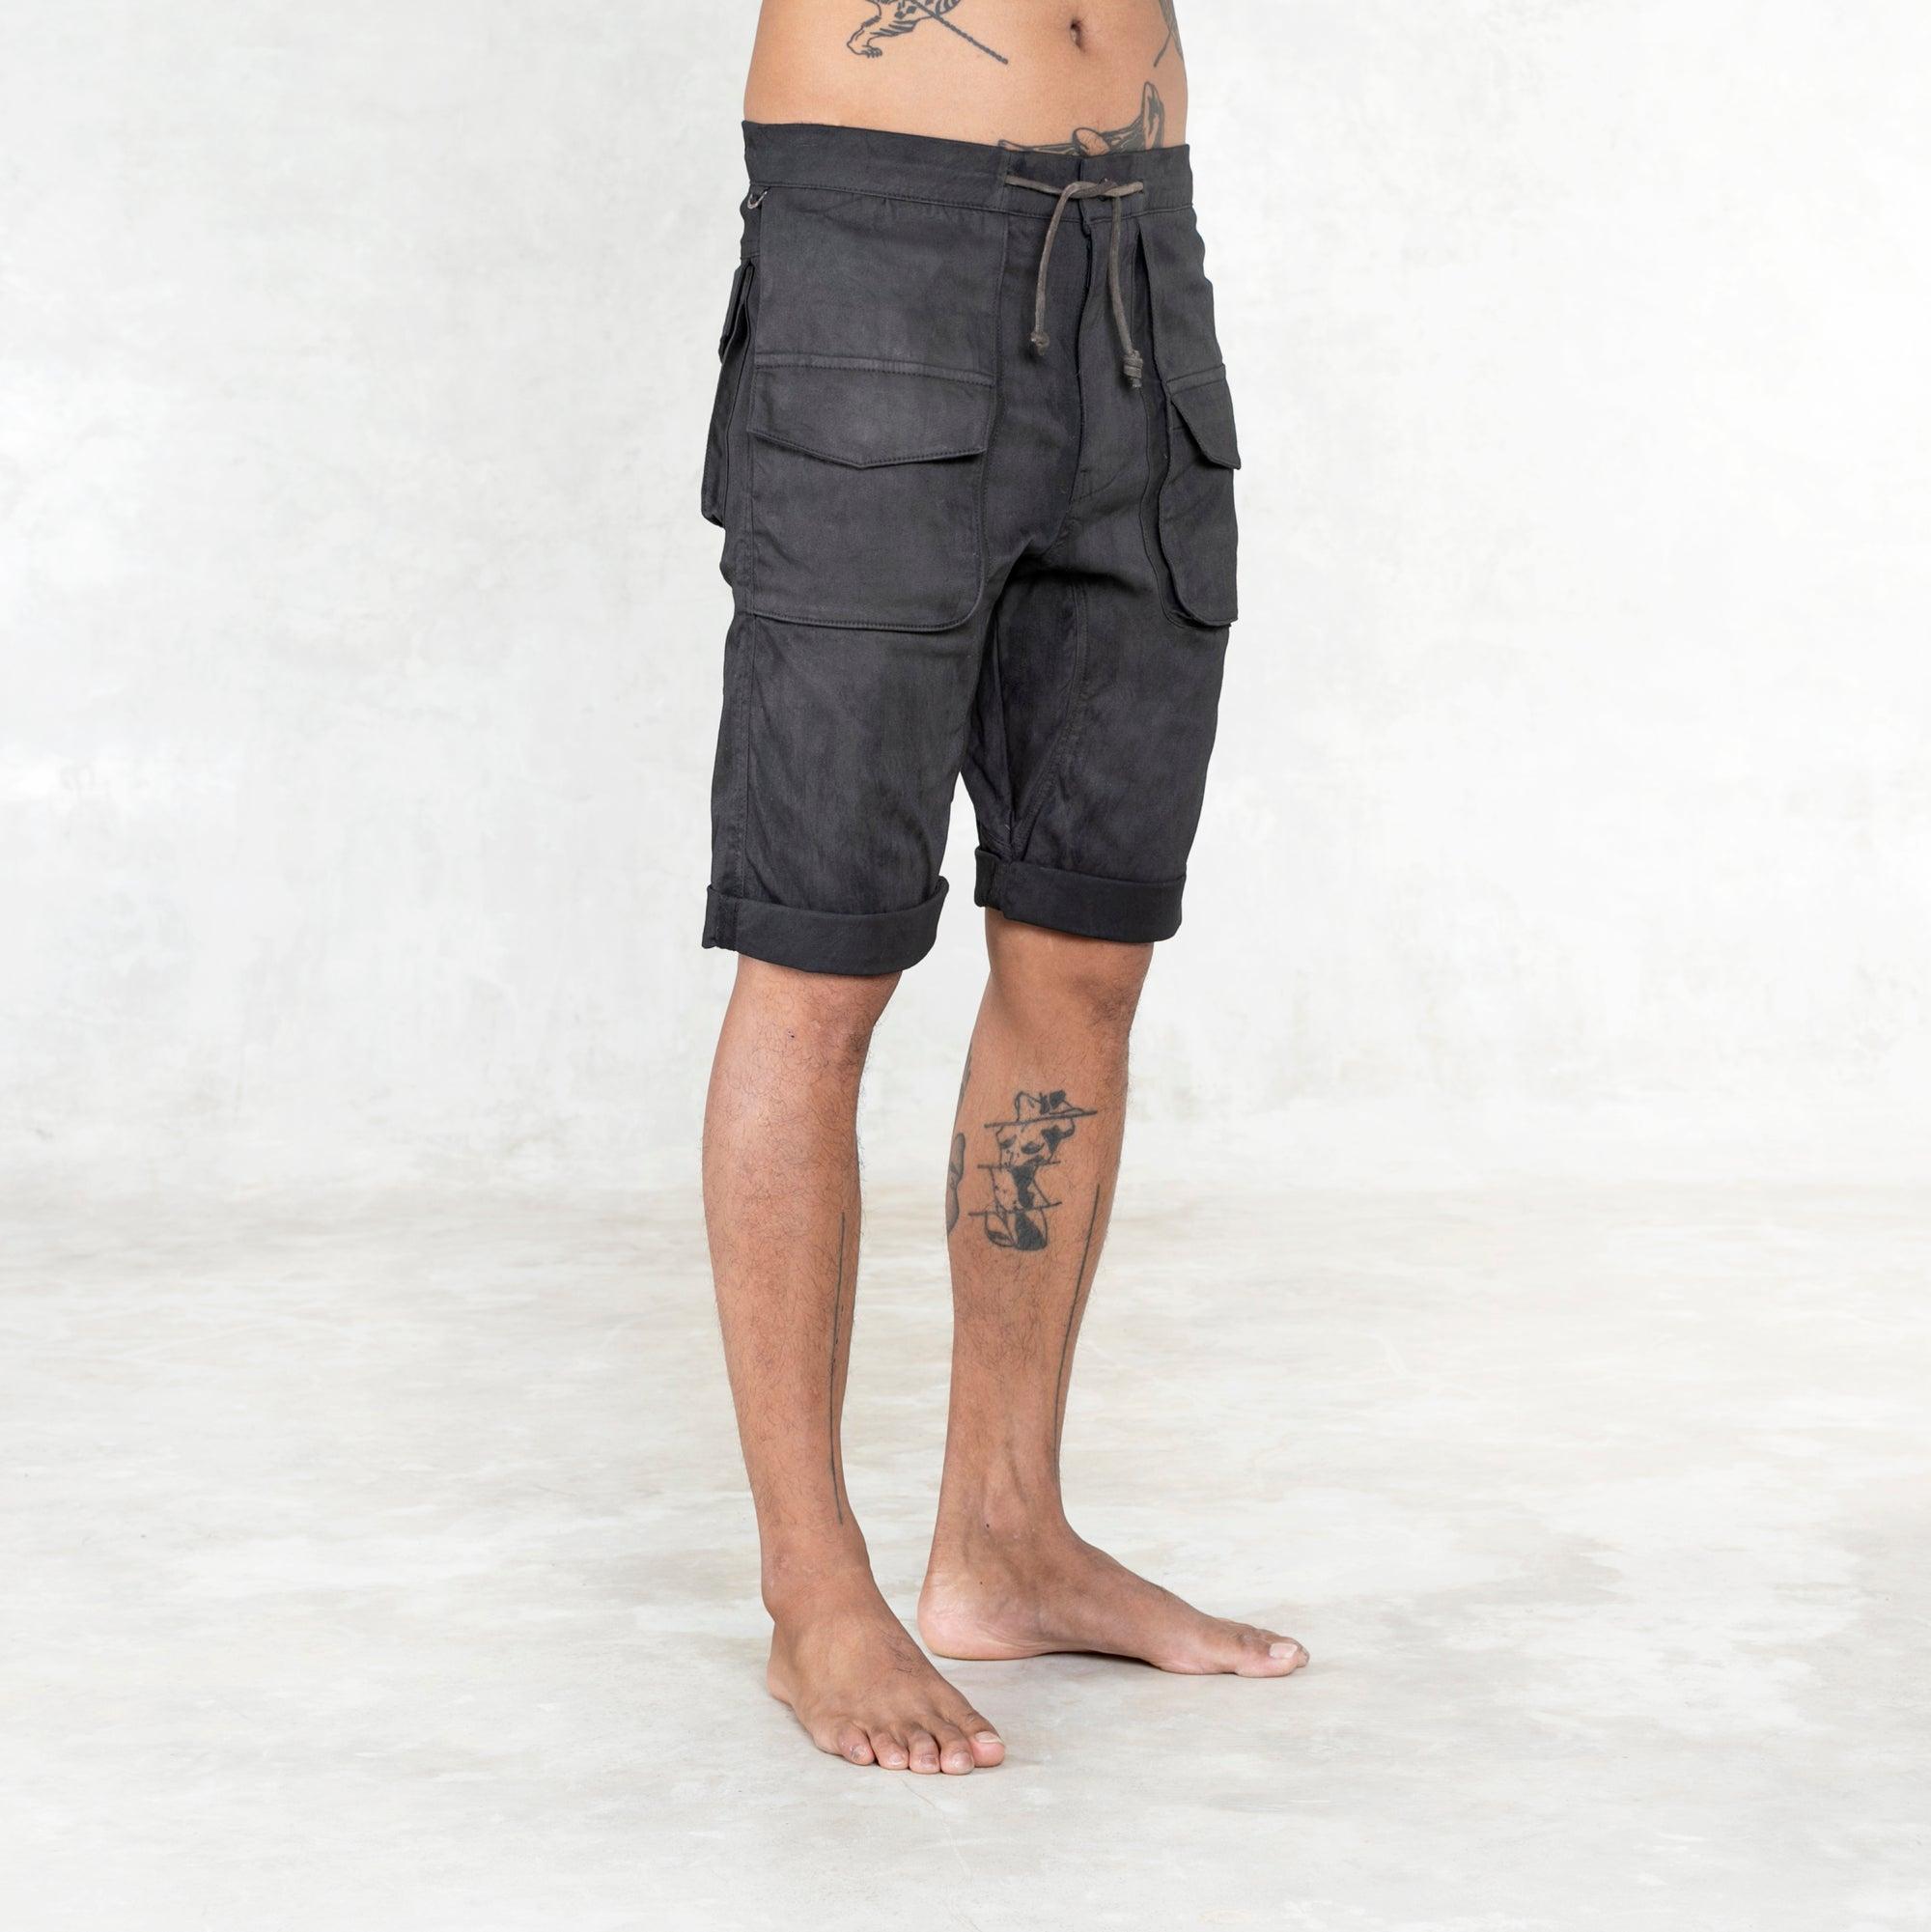 Grit Shorts - Black Walnut